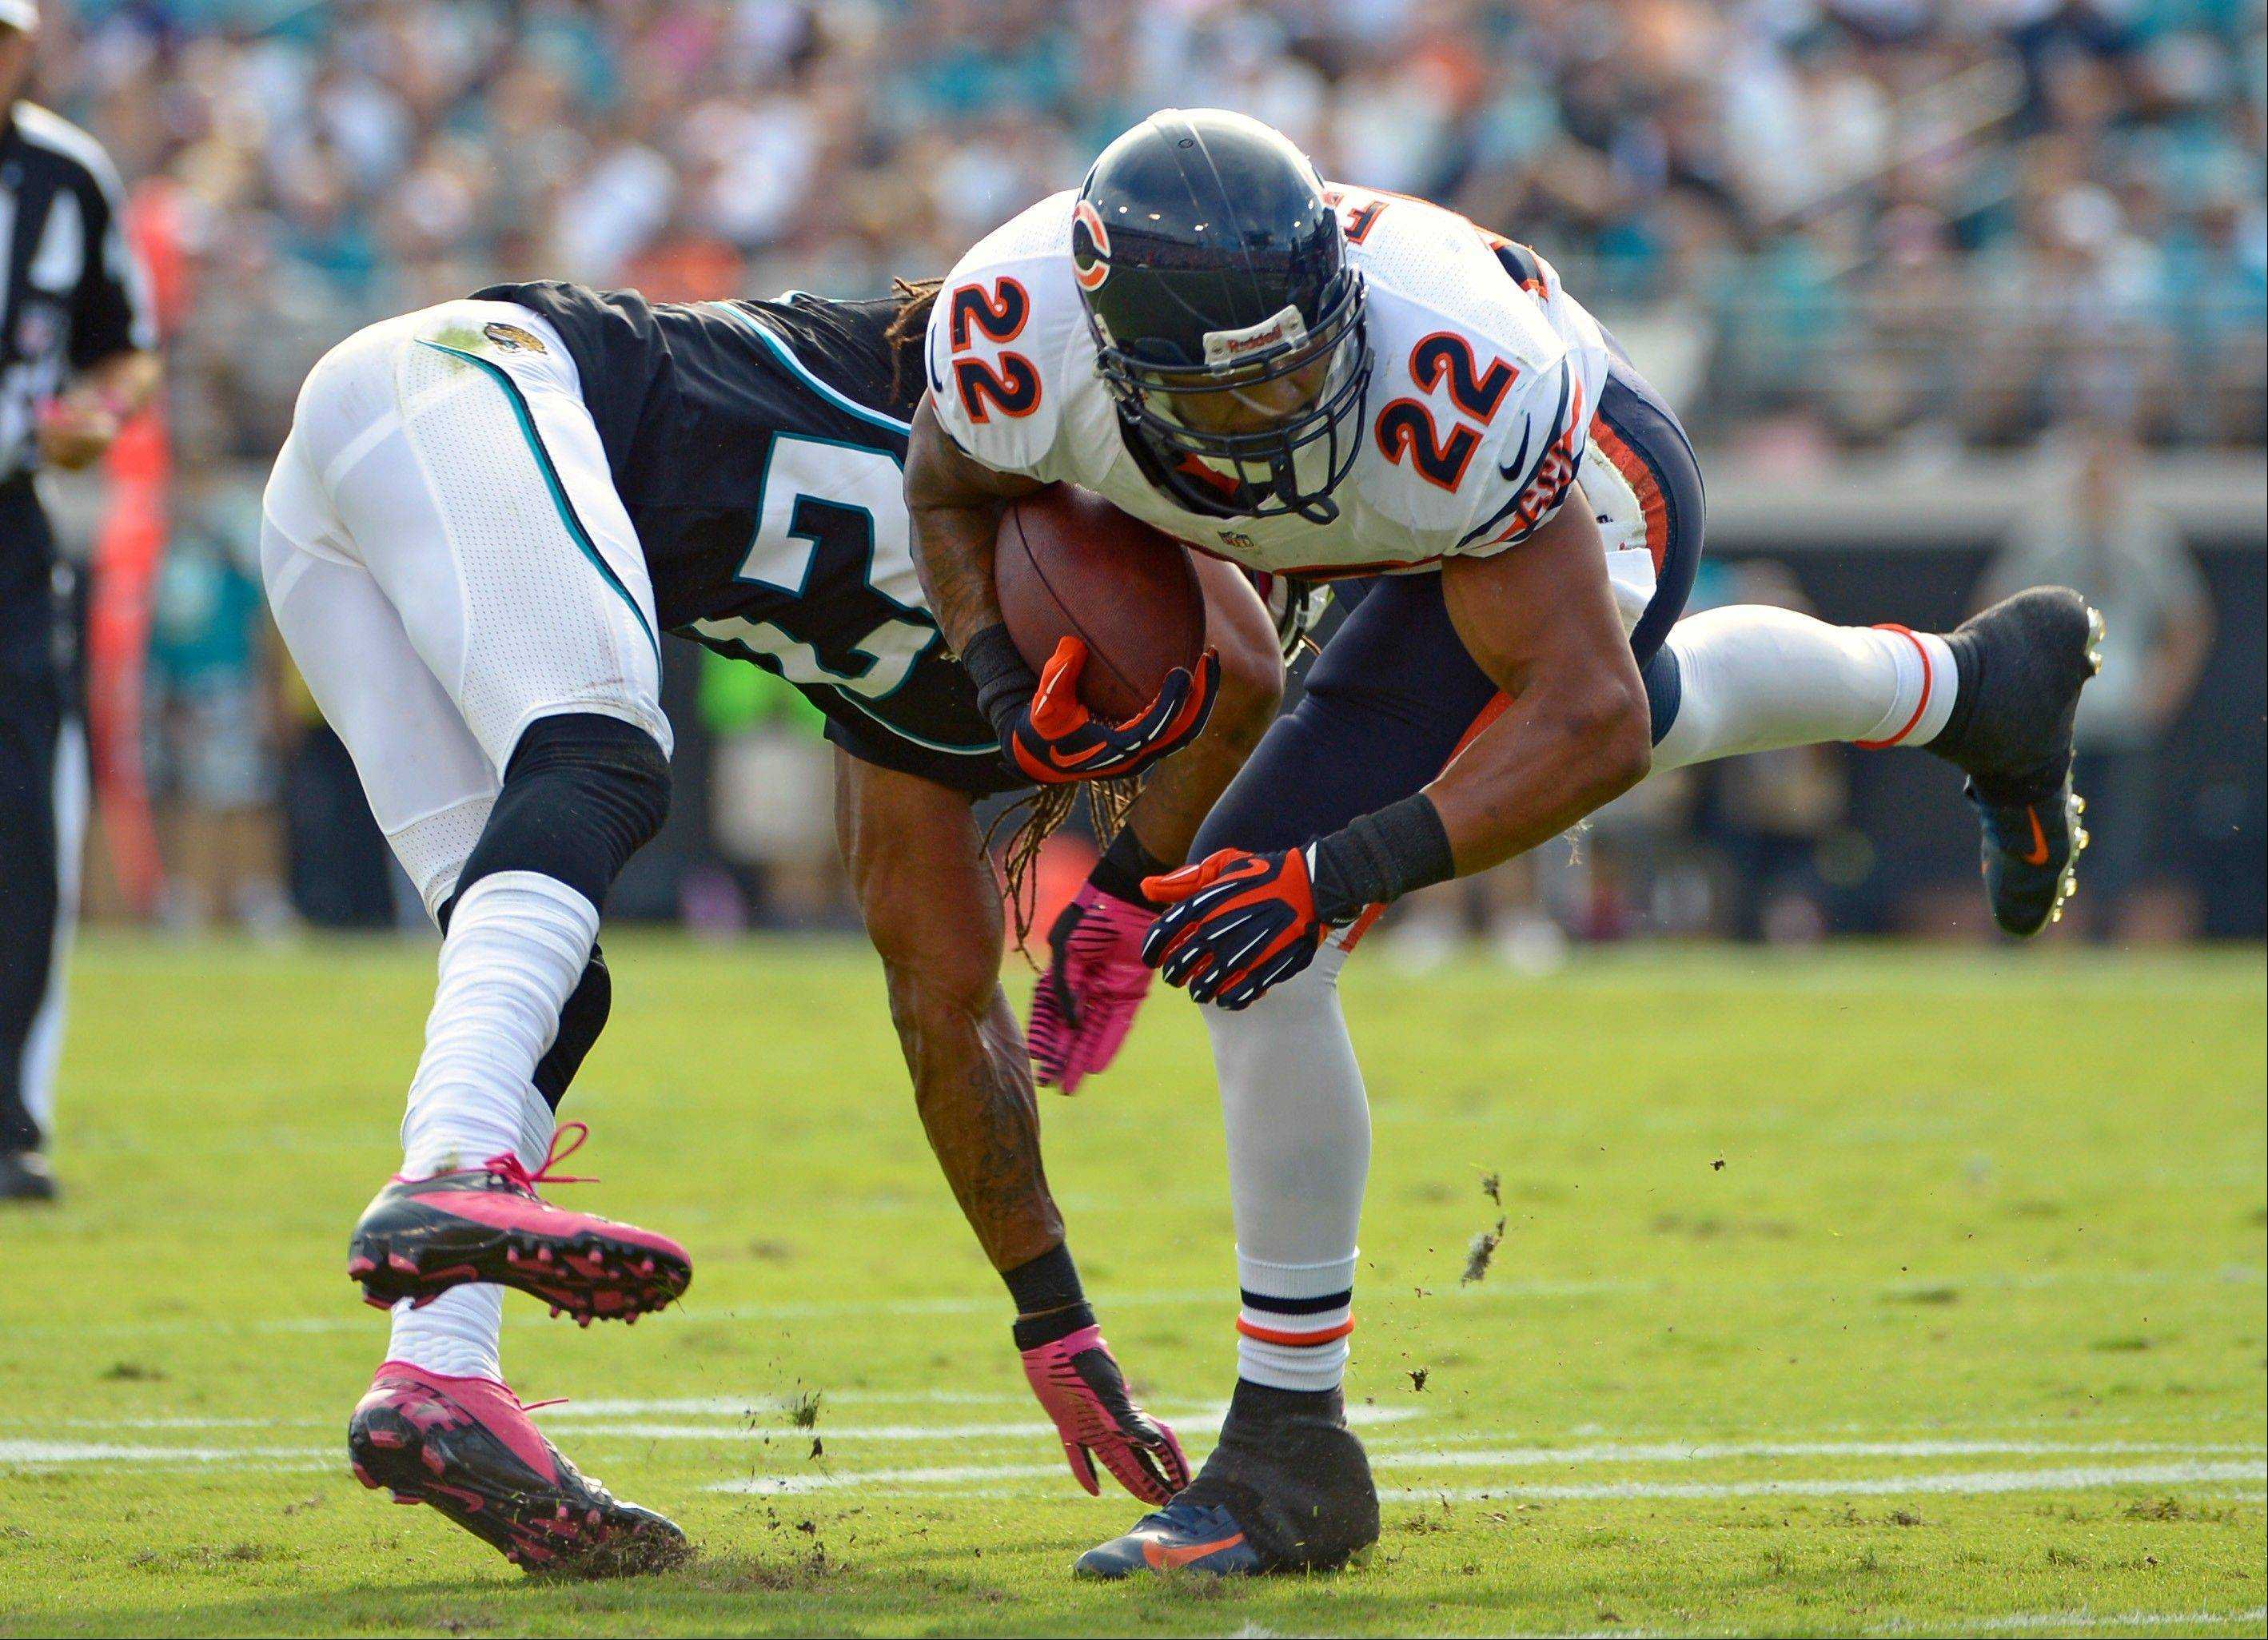 Chicago Bears running back Matt Forte is upended by Jacksonville Jaguars cornerback Rashean Mathis during the first half of an NFL football game, Sunday, in Jacksonville, Fla.